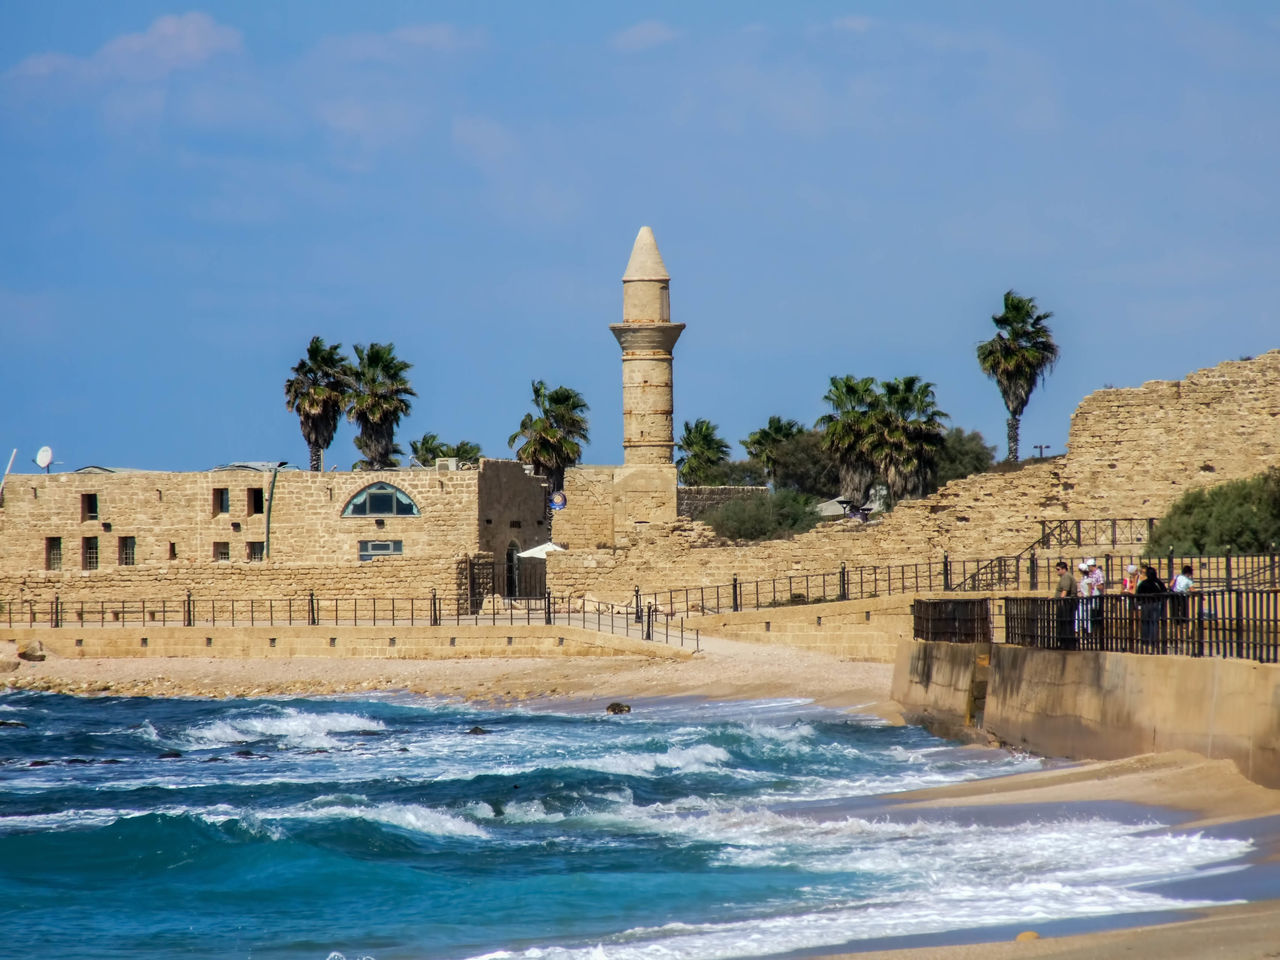 Caesarea's Antiquities Park Ancient, Antique, Archeology, Architecture, Art, Asia, Background, Beach, Beauty, Bible, Blue, Brick, Bright, Building, Caesarea, Calm, City, Clouds, Coast, Coastline, Construction, Culture, Harbor, History, Holy, Israel, Judea, Landmark, Landscape, Lines Architecture Beauty In Nature Blue Built Structure Caesarea, Israel, Keysarya, Palestine, Arab, Jew, Israeli, Palestinian Caesarea's Antiquities Park Cloud Cloud - Sky Day Fishing Harbor King Herod, Augustus Caesar, Caesar Nature Outdoors Scenics Sea Shore Sky Tourism Tranquil Scene Tranquility Travel Destinations Tree Vacations Water